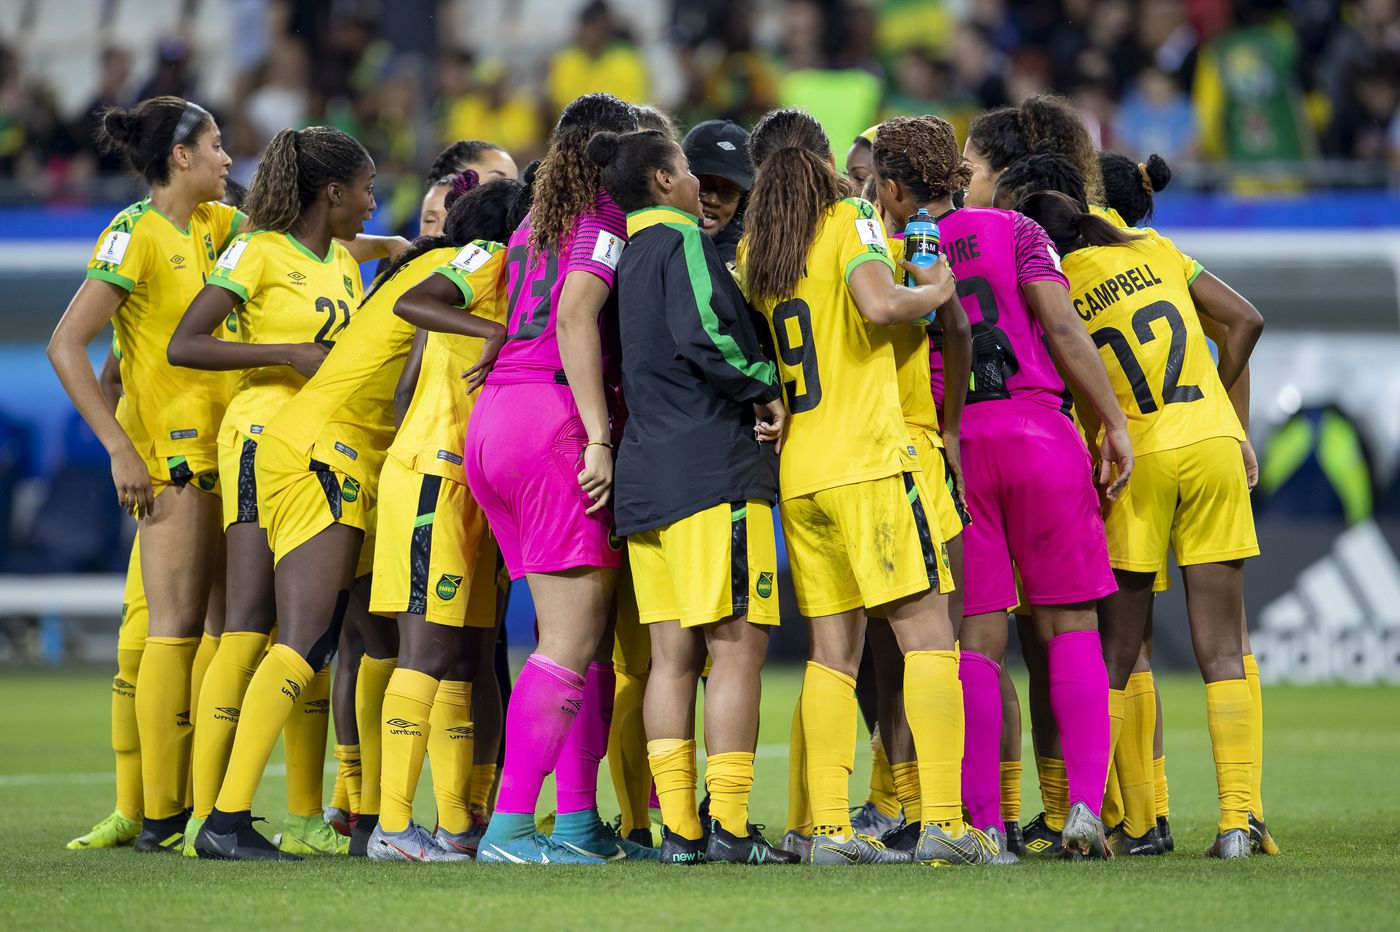 Jamaica women's soccer team still in financial peril despite World Cup success